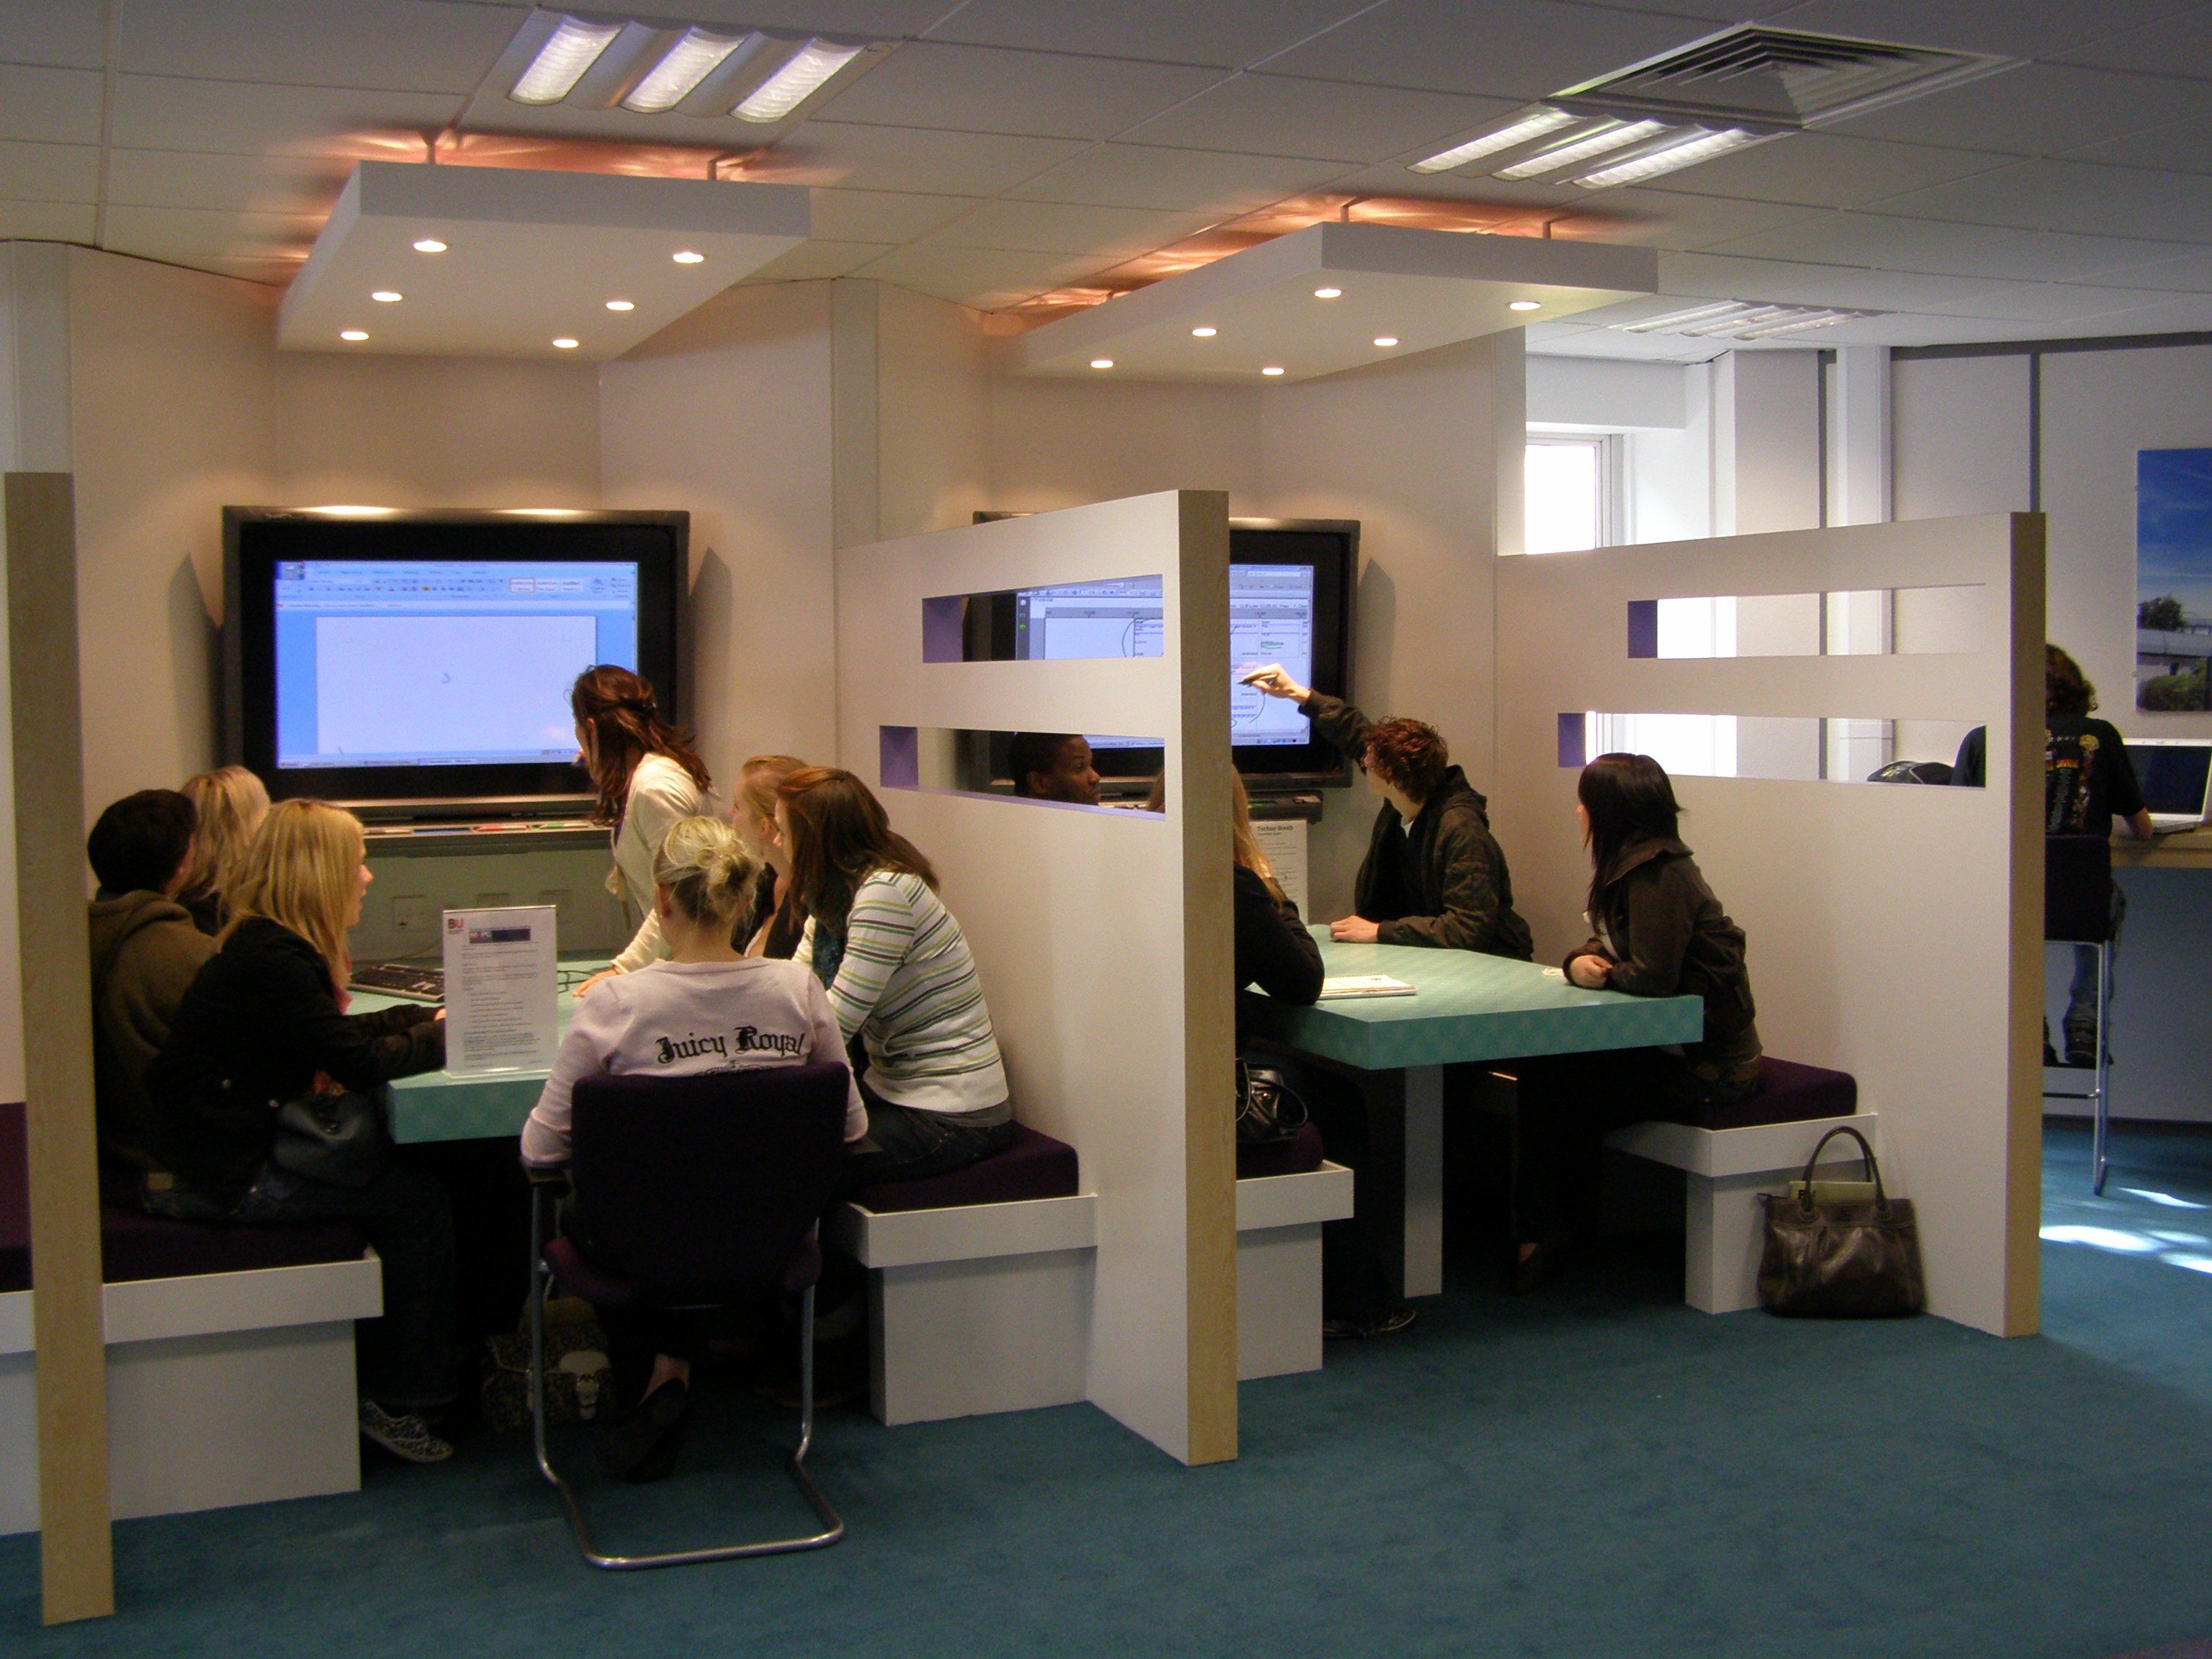 Panlibus Blog » Blog Archive » Bournemouth University library talks with Talis about its Outstanding Library Team shortlisting